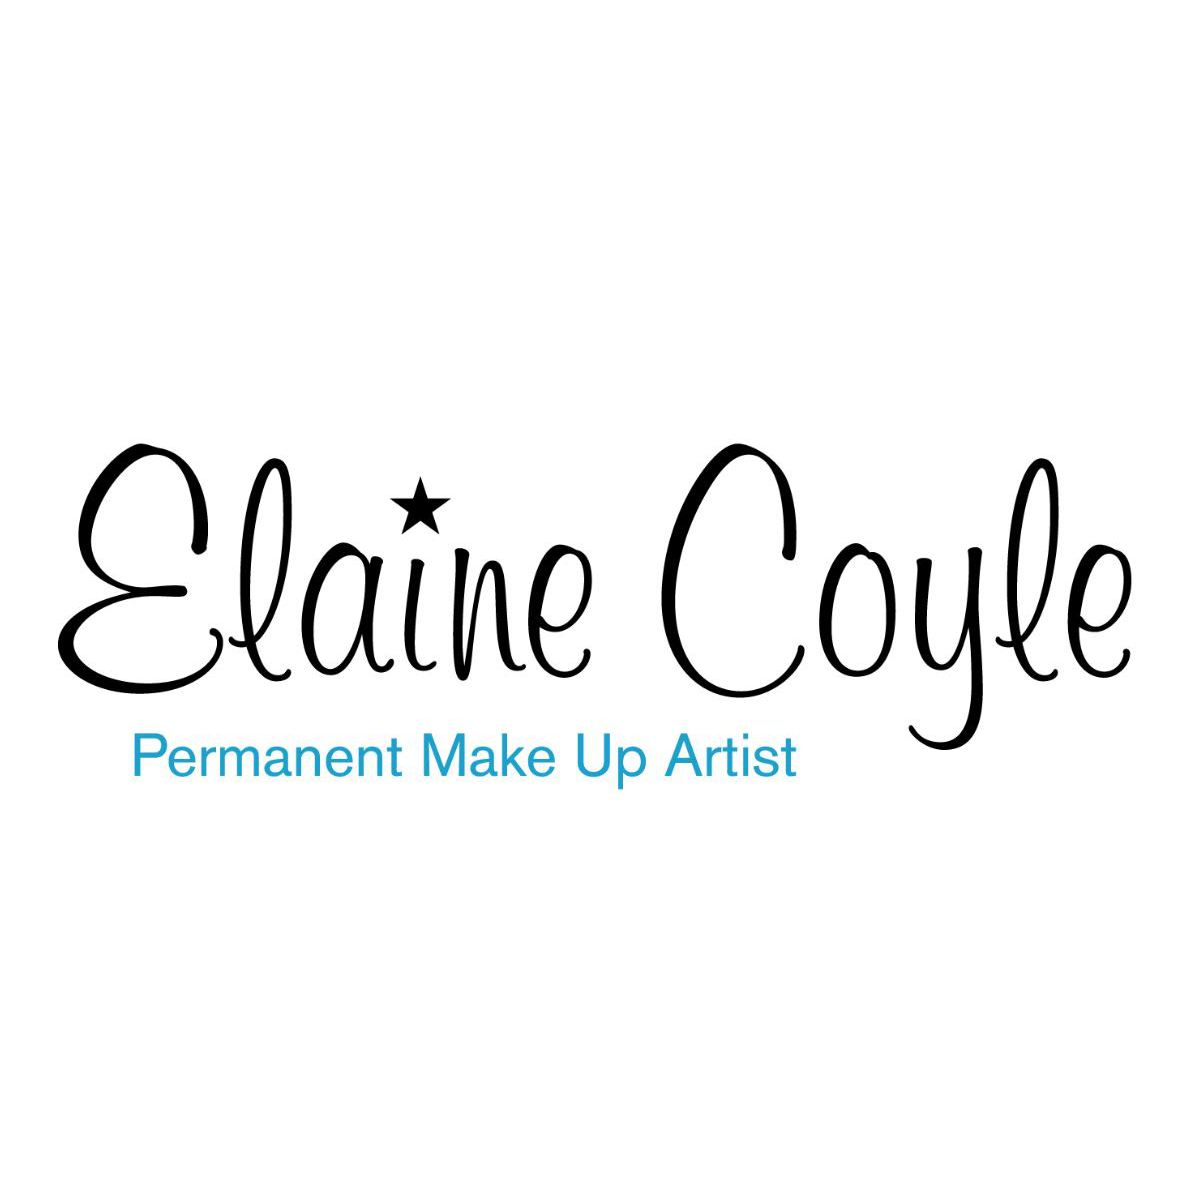 Elaine Coyle Permanent Make Up - Derby, Derbyshire  - 07528 942311 | ShowMeLocal.com